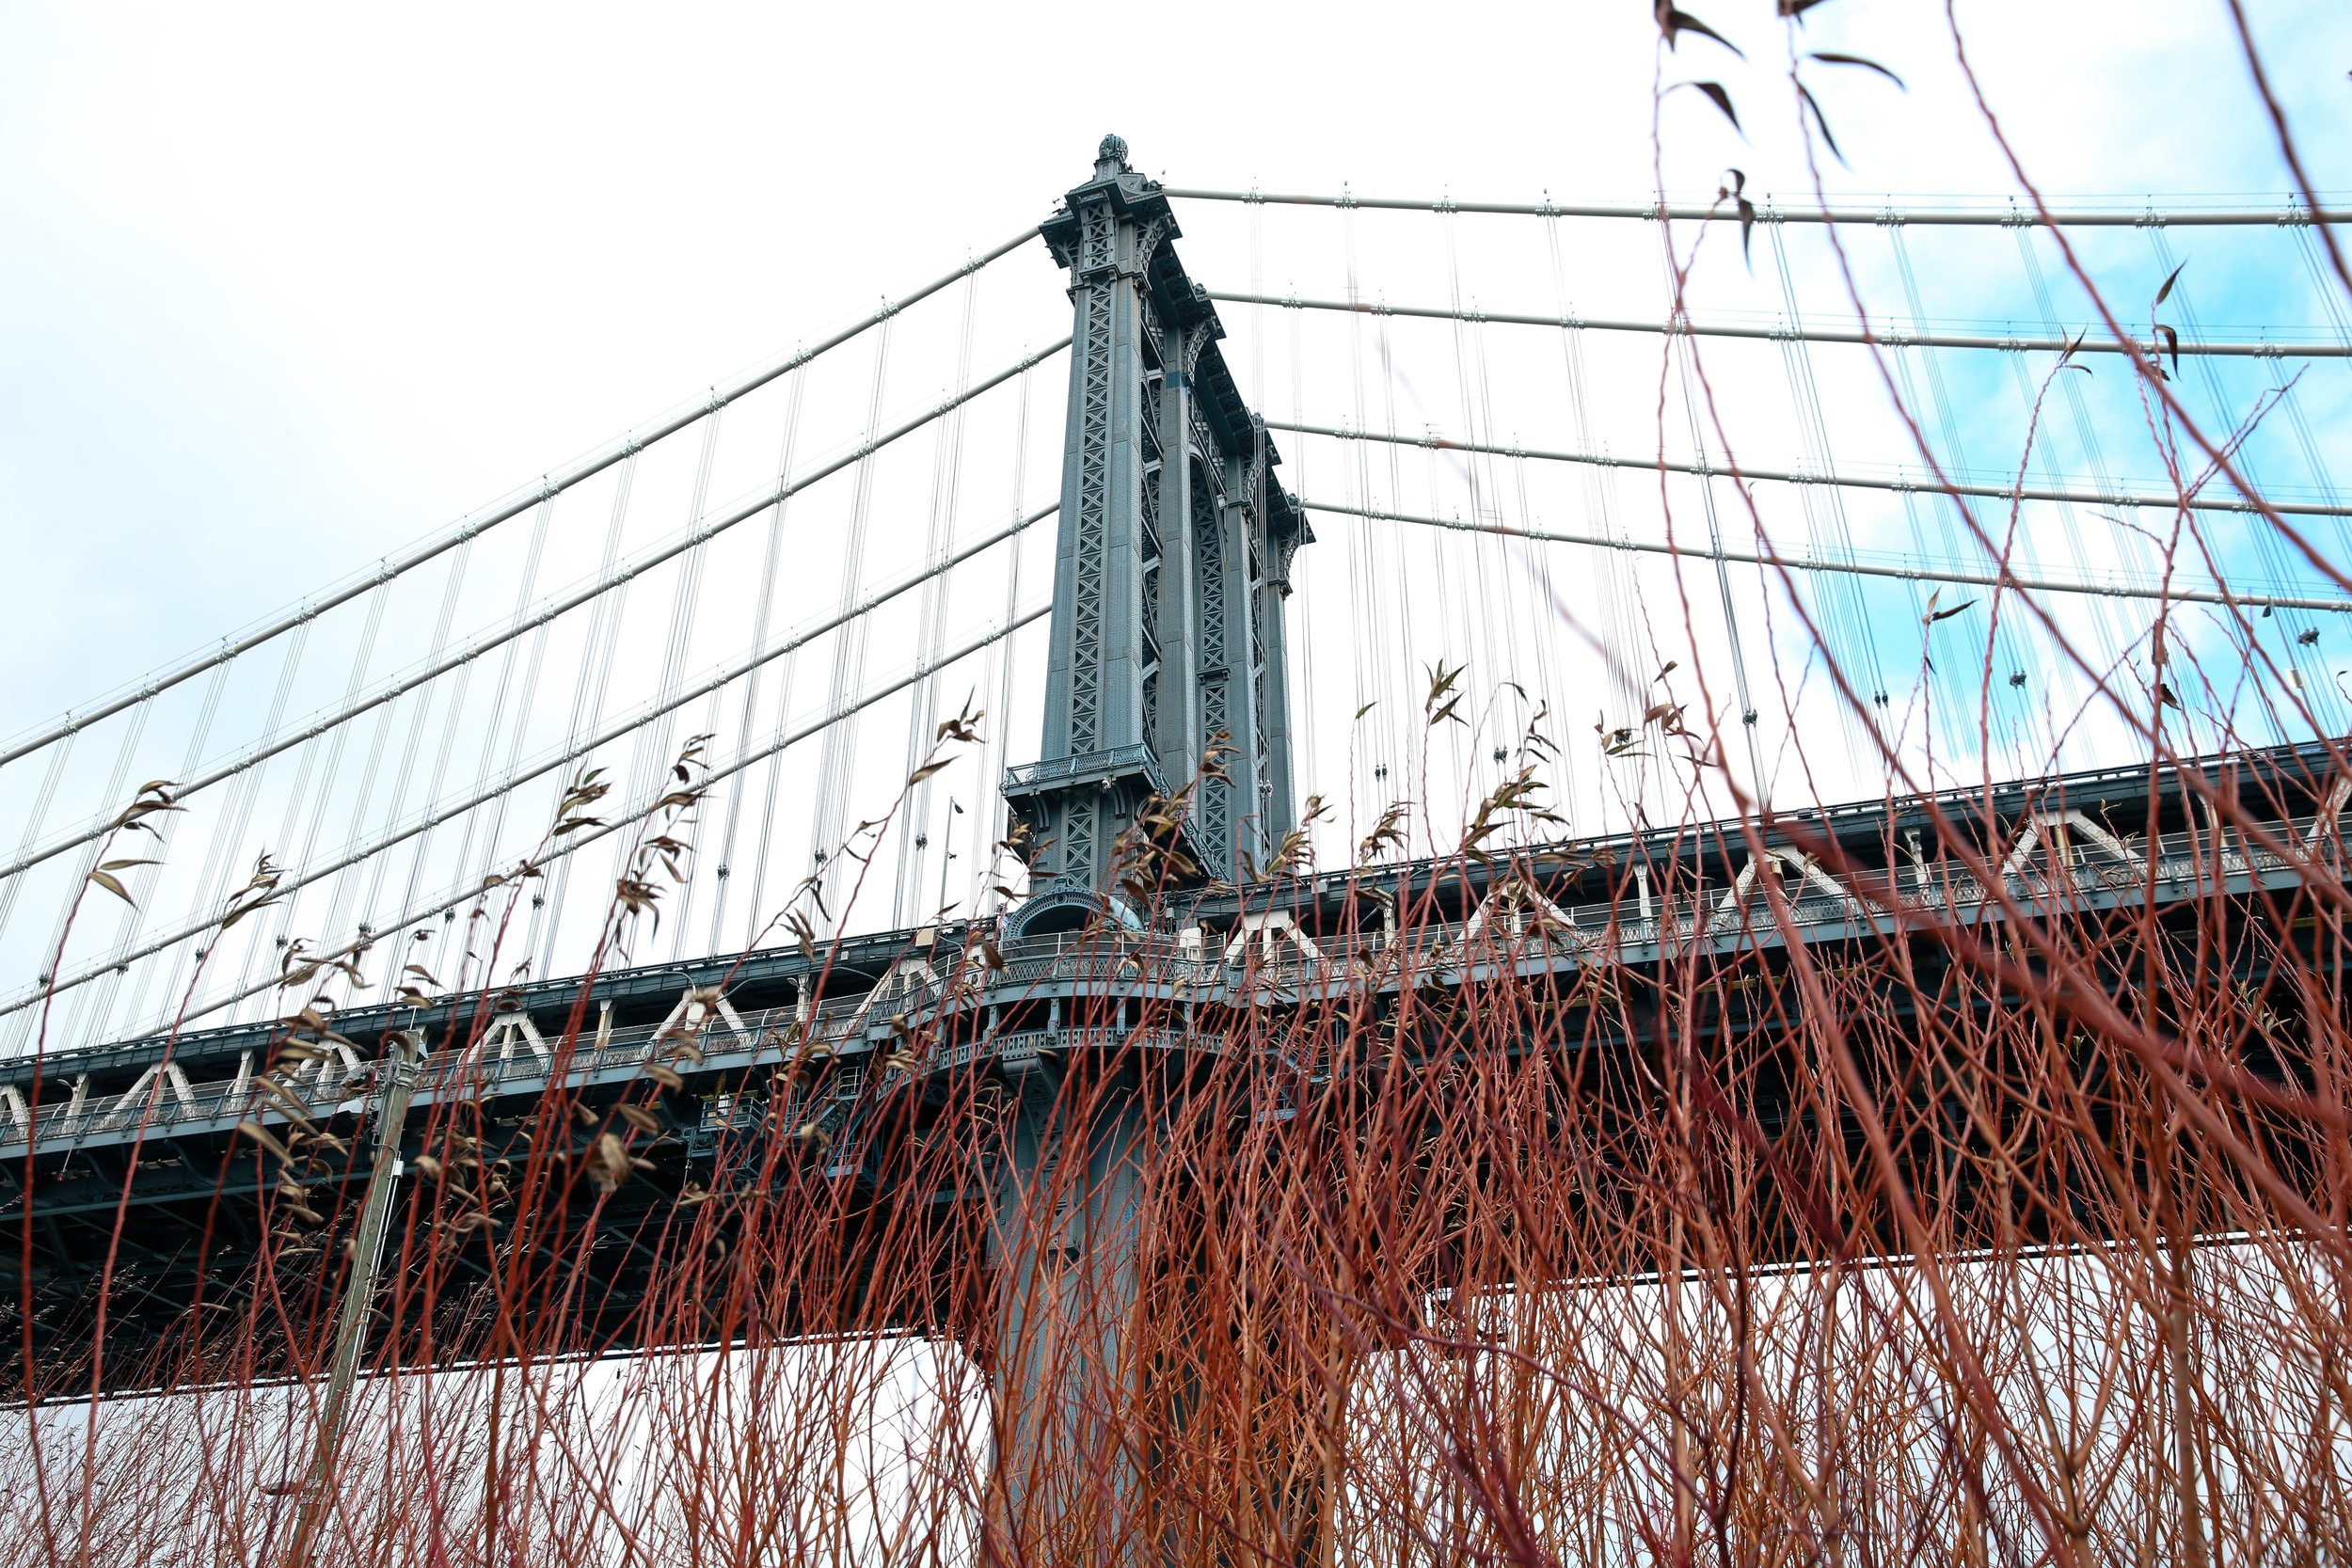 The Dumbo Bridge